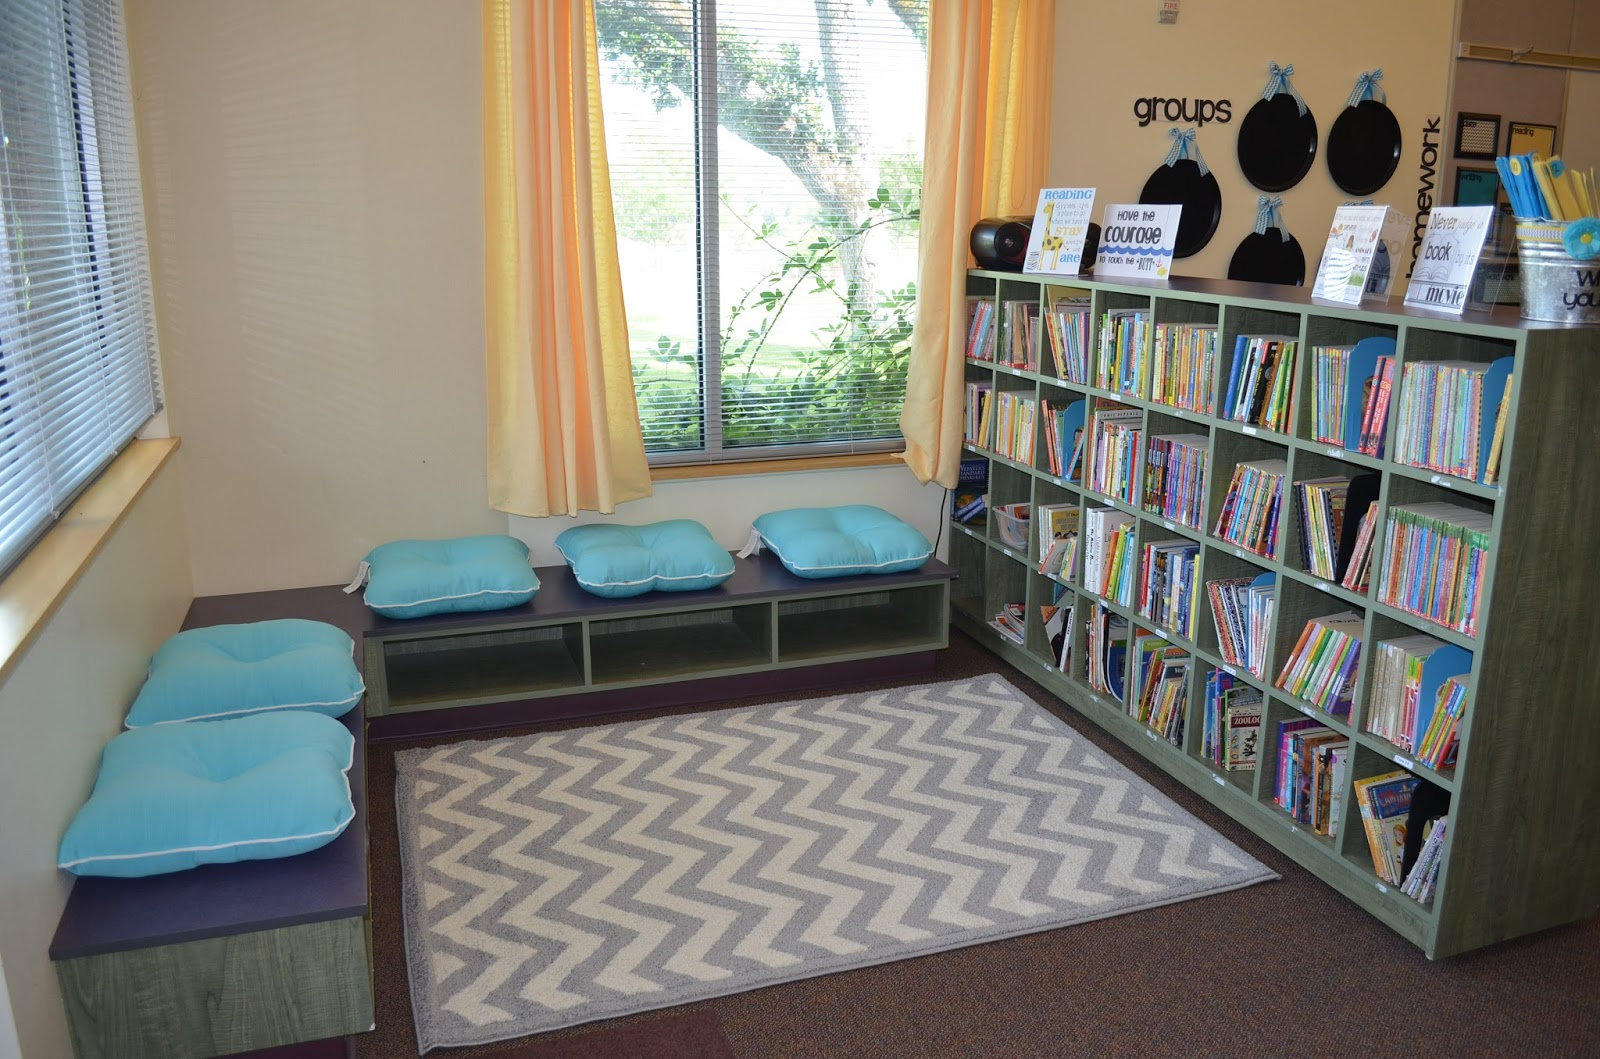 Dandelions and dragonflies an oregon classroom reveal Small library room design ideas